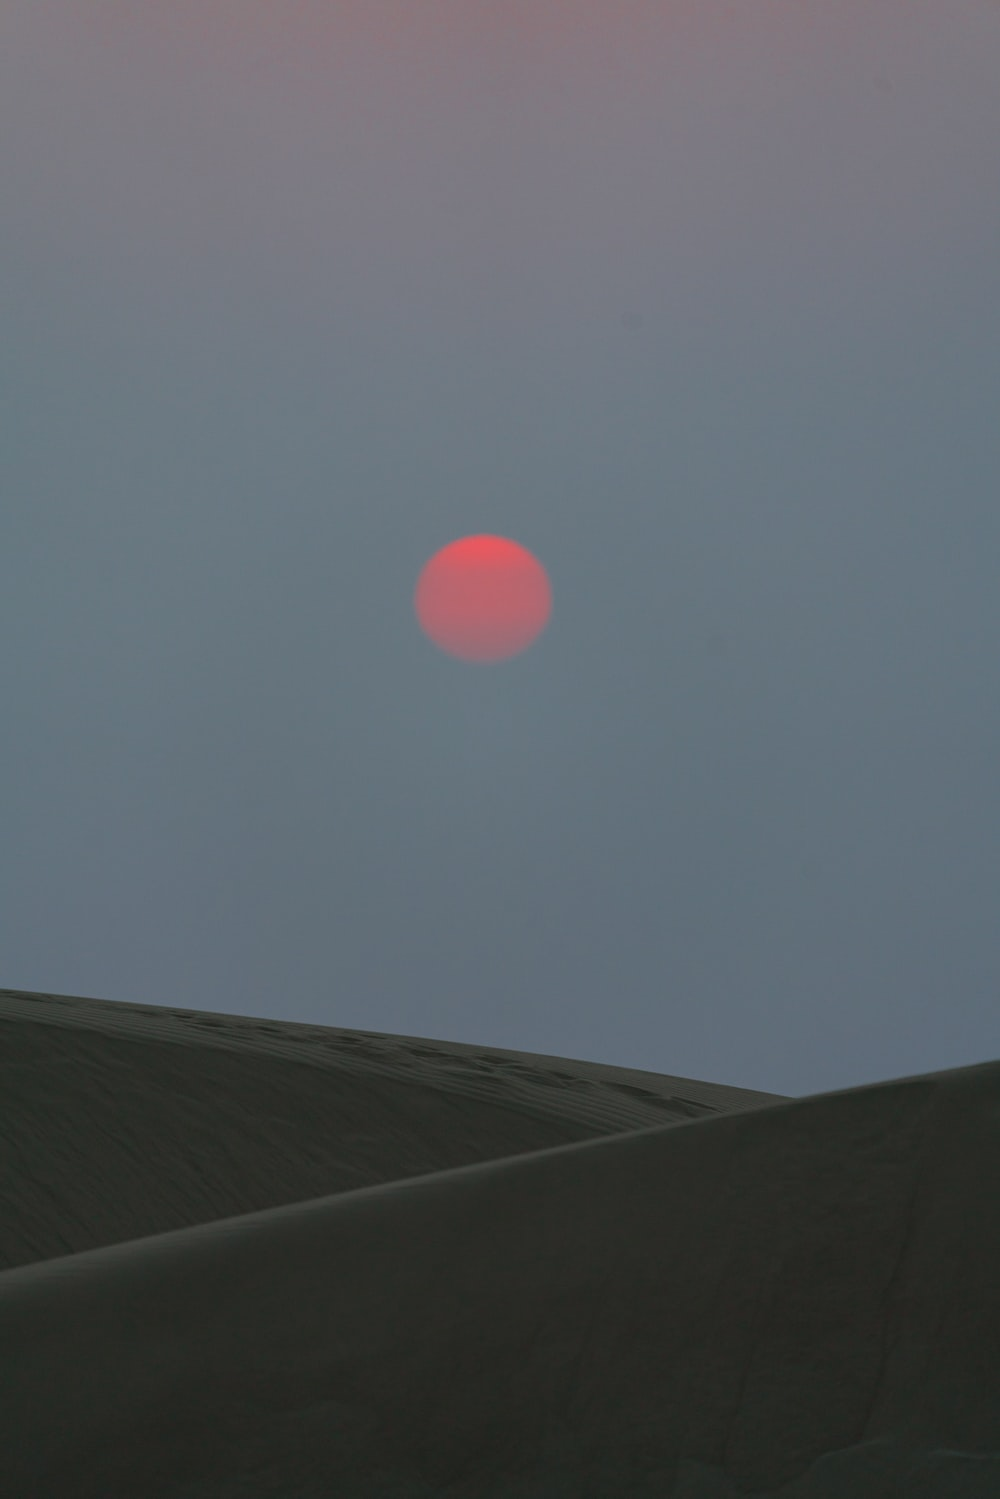 red moon on gray sky